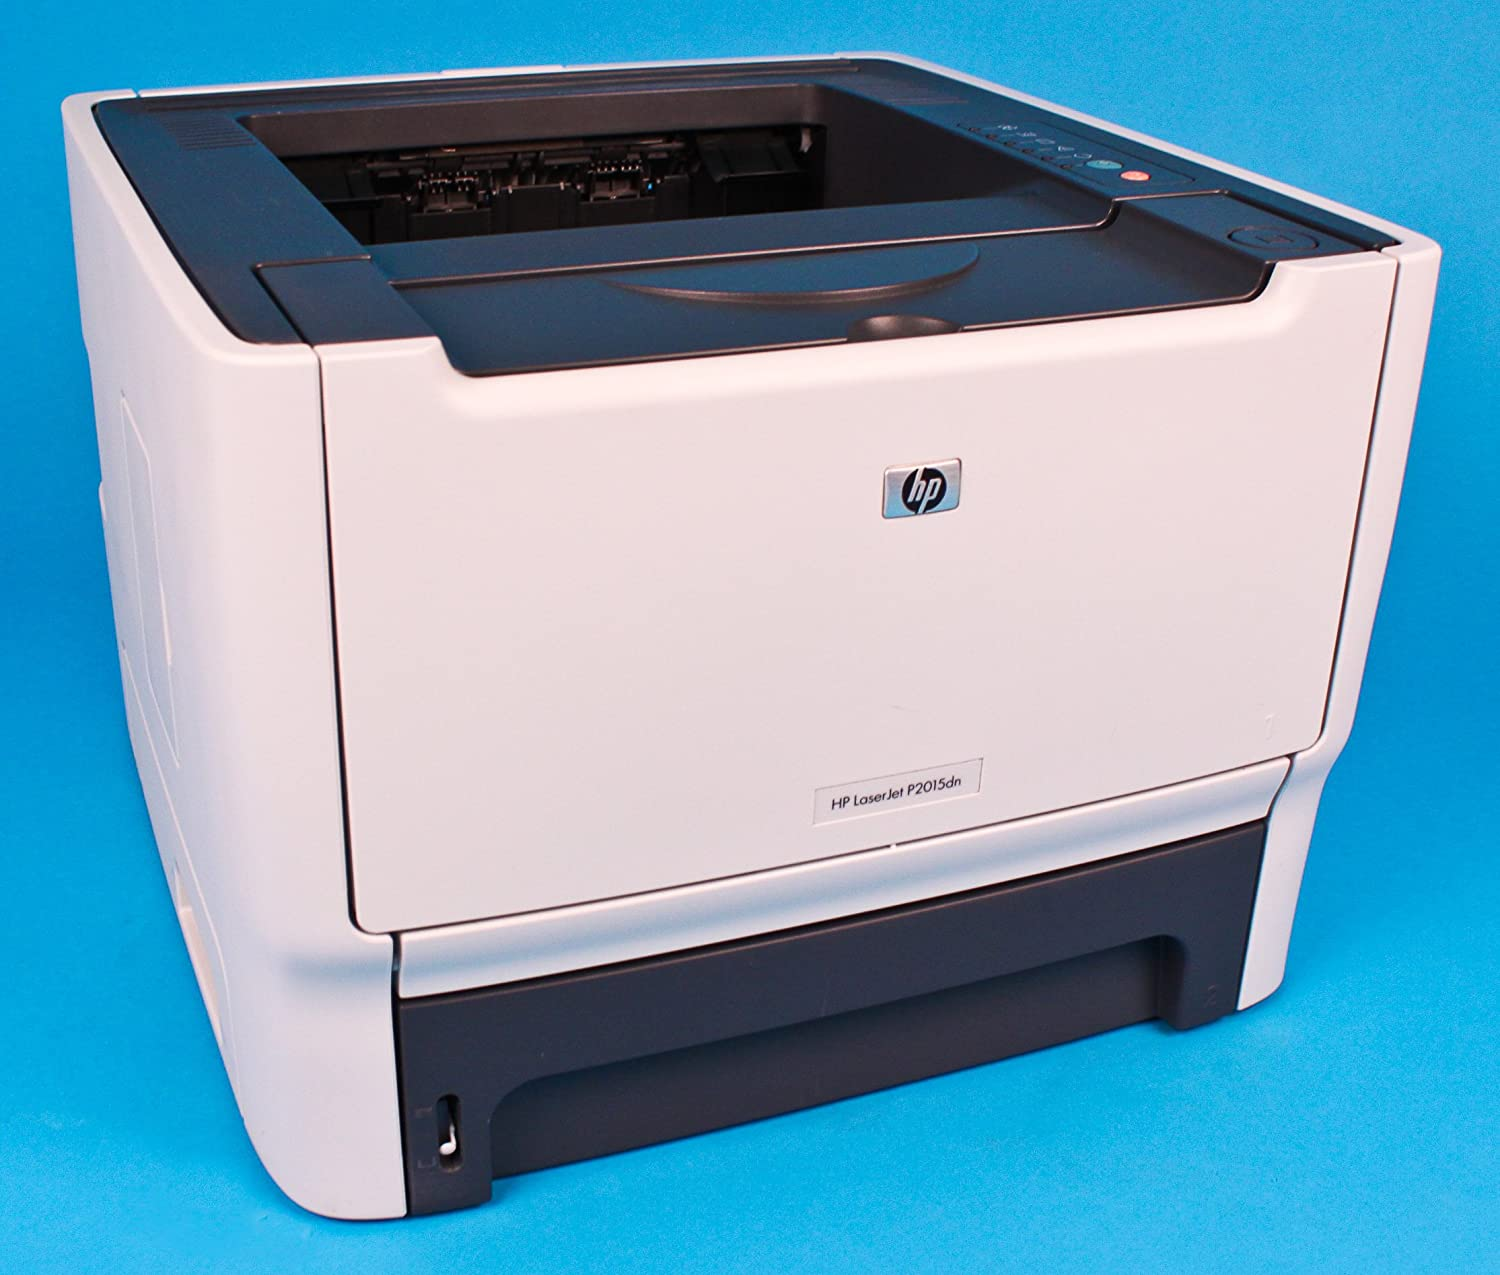 Amazon.com: cb368 a HP LaserJet P2015dn Printer: Electronics